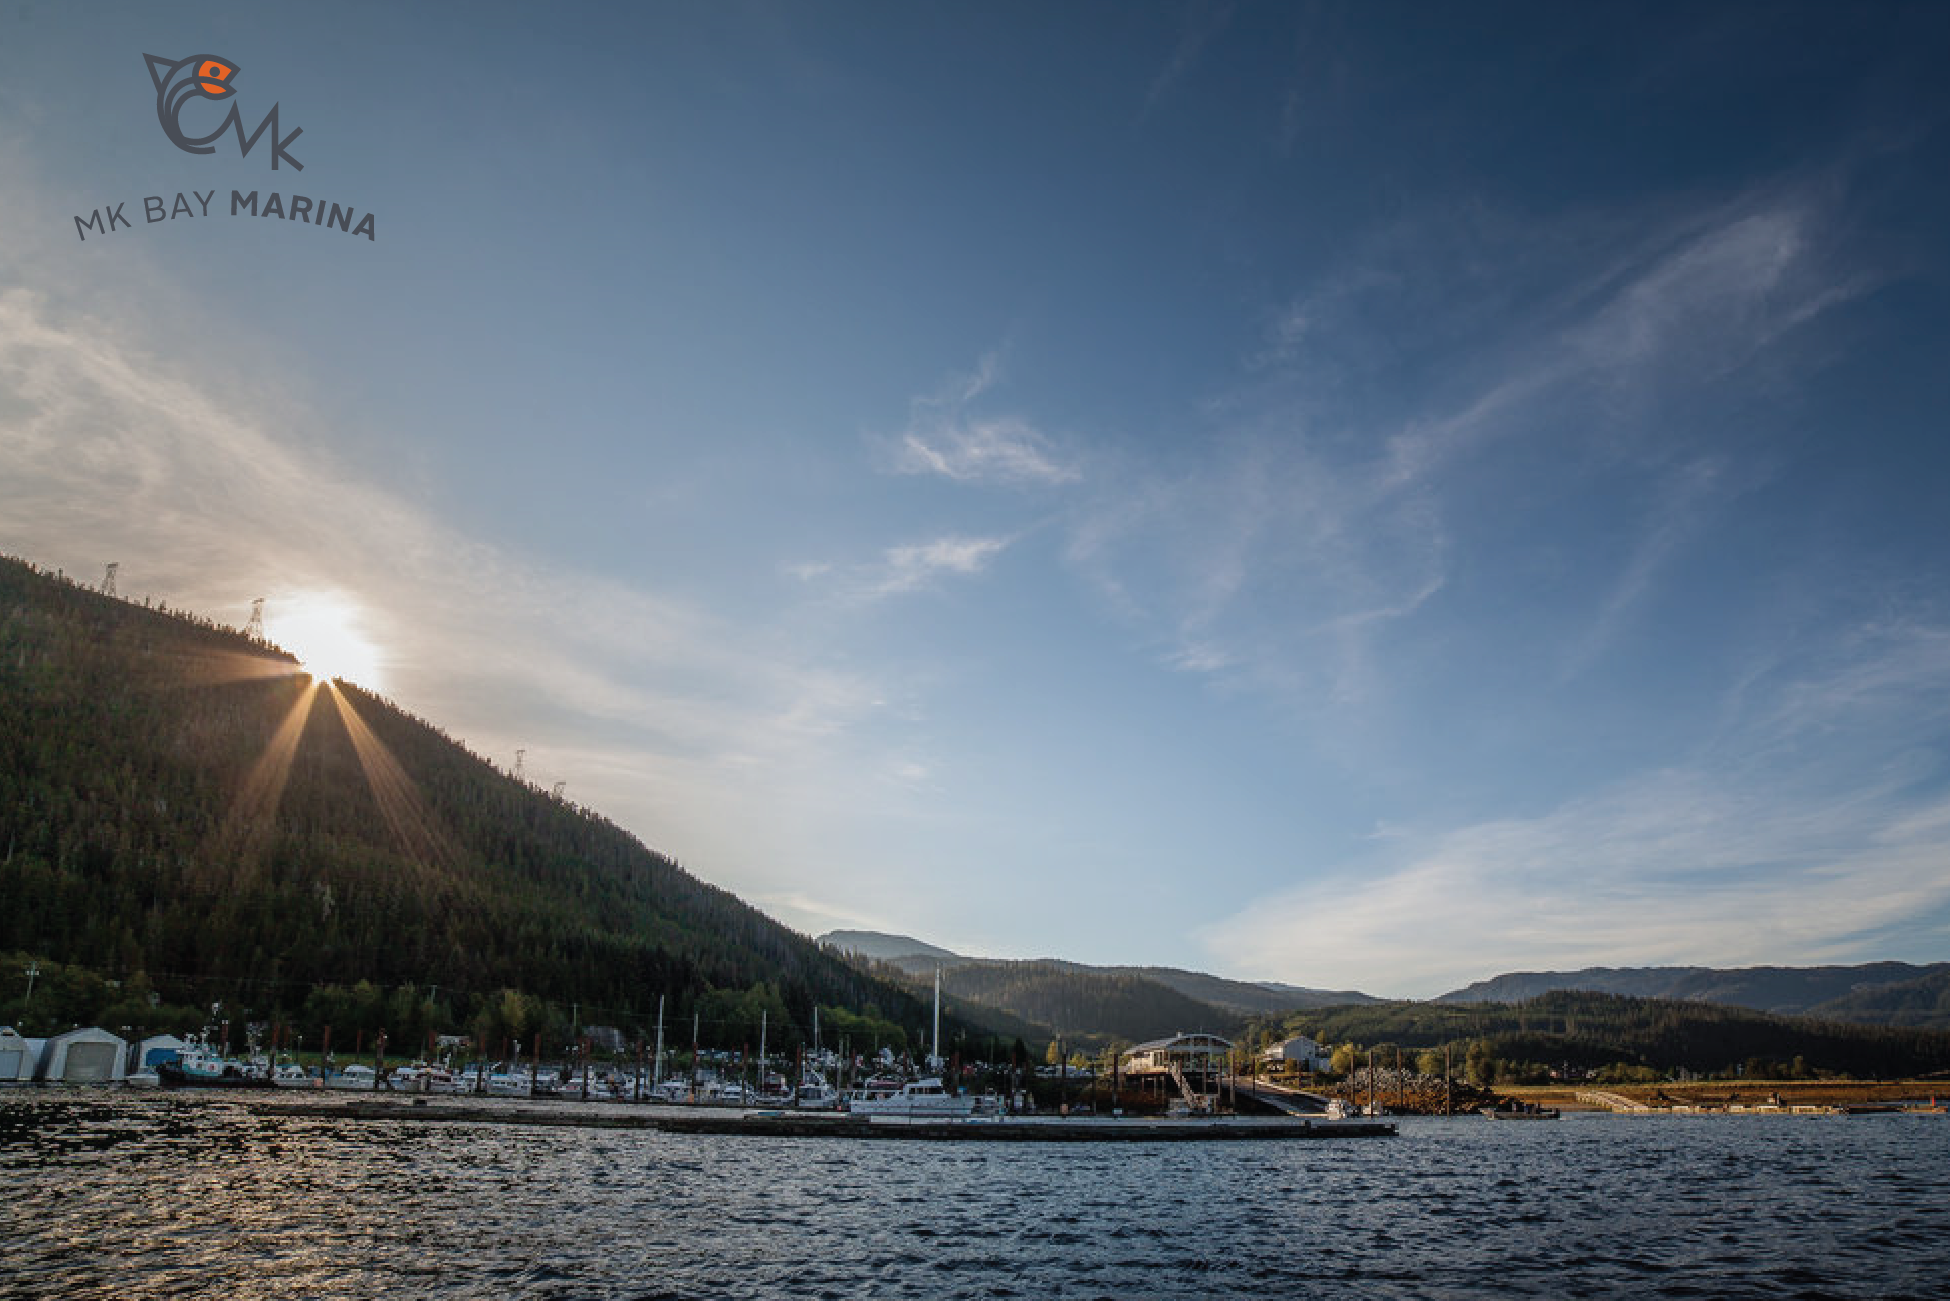 MK Bay Marina   ,  Kitimat, BC. Our full service marina, store and campground are located at the head of the Douglas Channel in the center of year round fishing and relaxation.